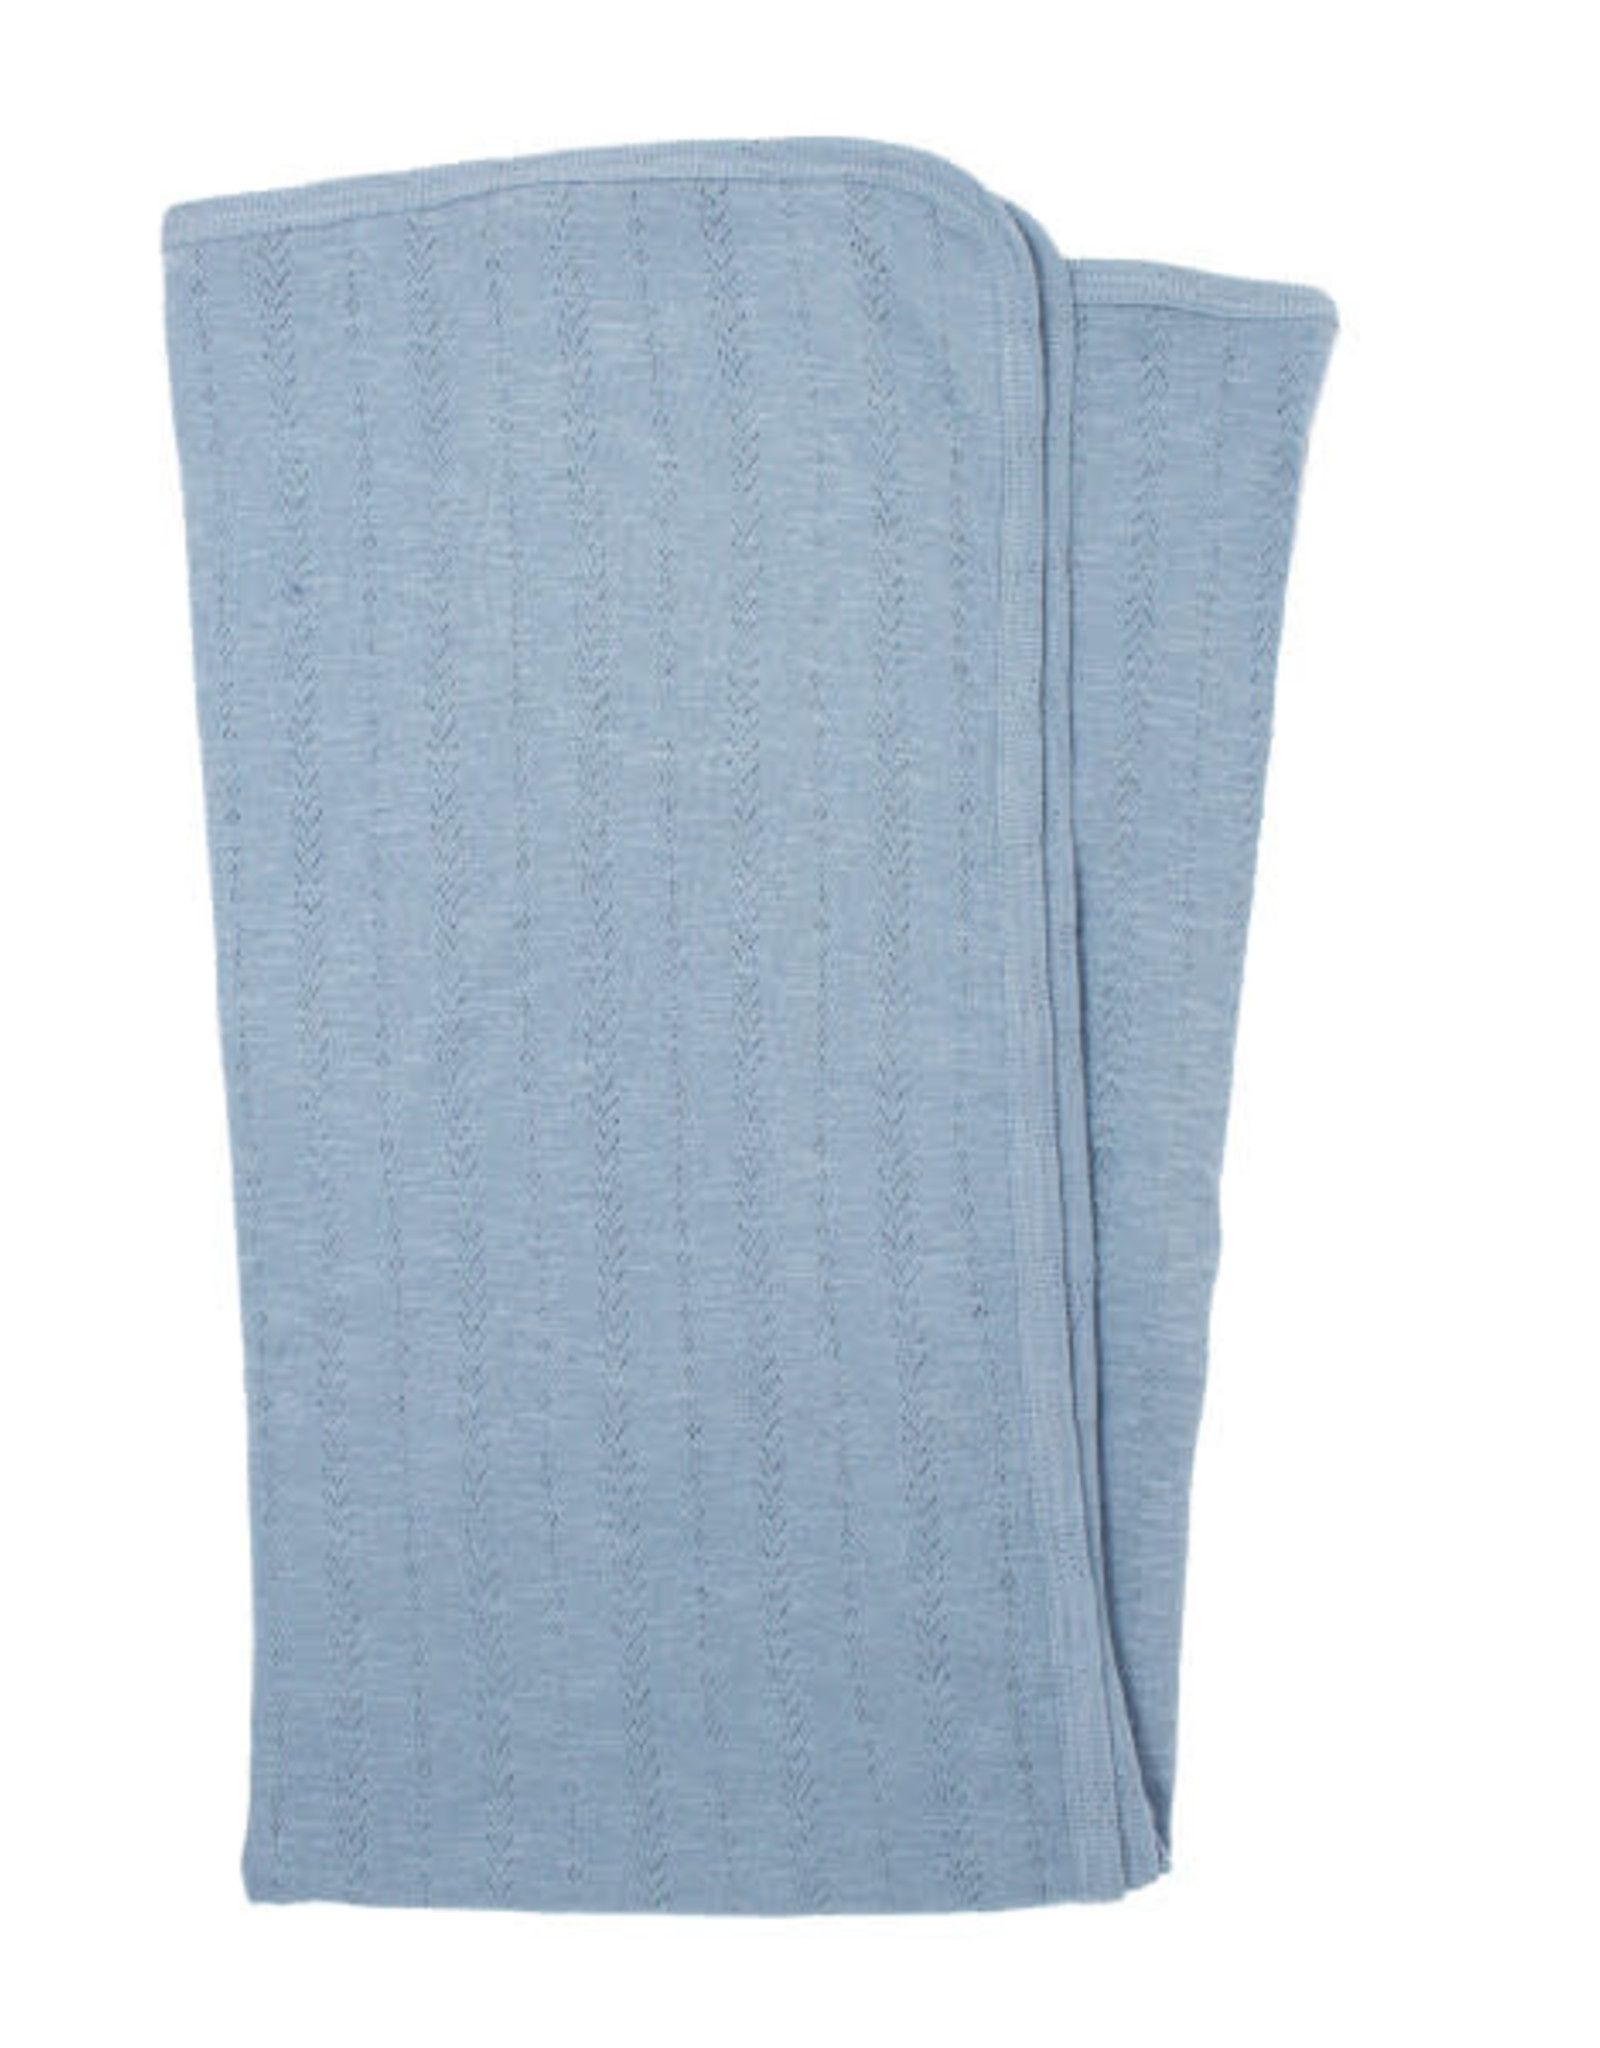 L'oved Baby Pointelle Swaddle Blanket Pool